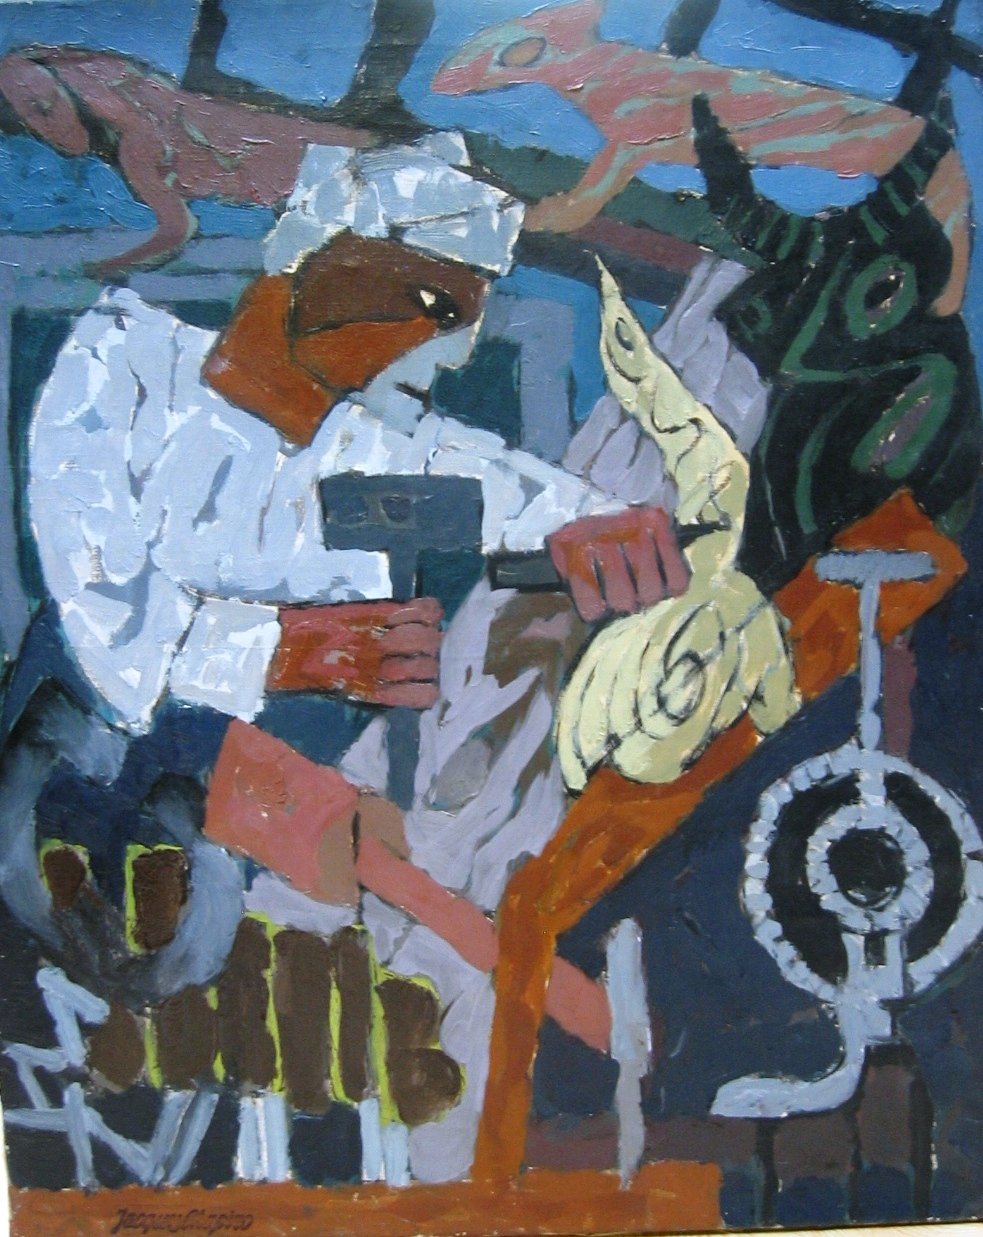 Sculptor. Oil on canvas. Size: 73 cm x 59.5 cm.